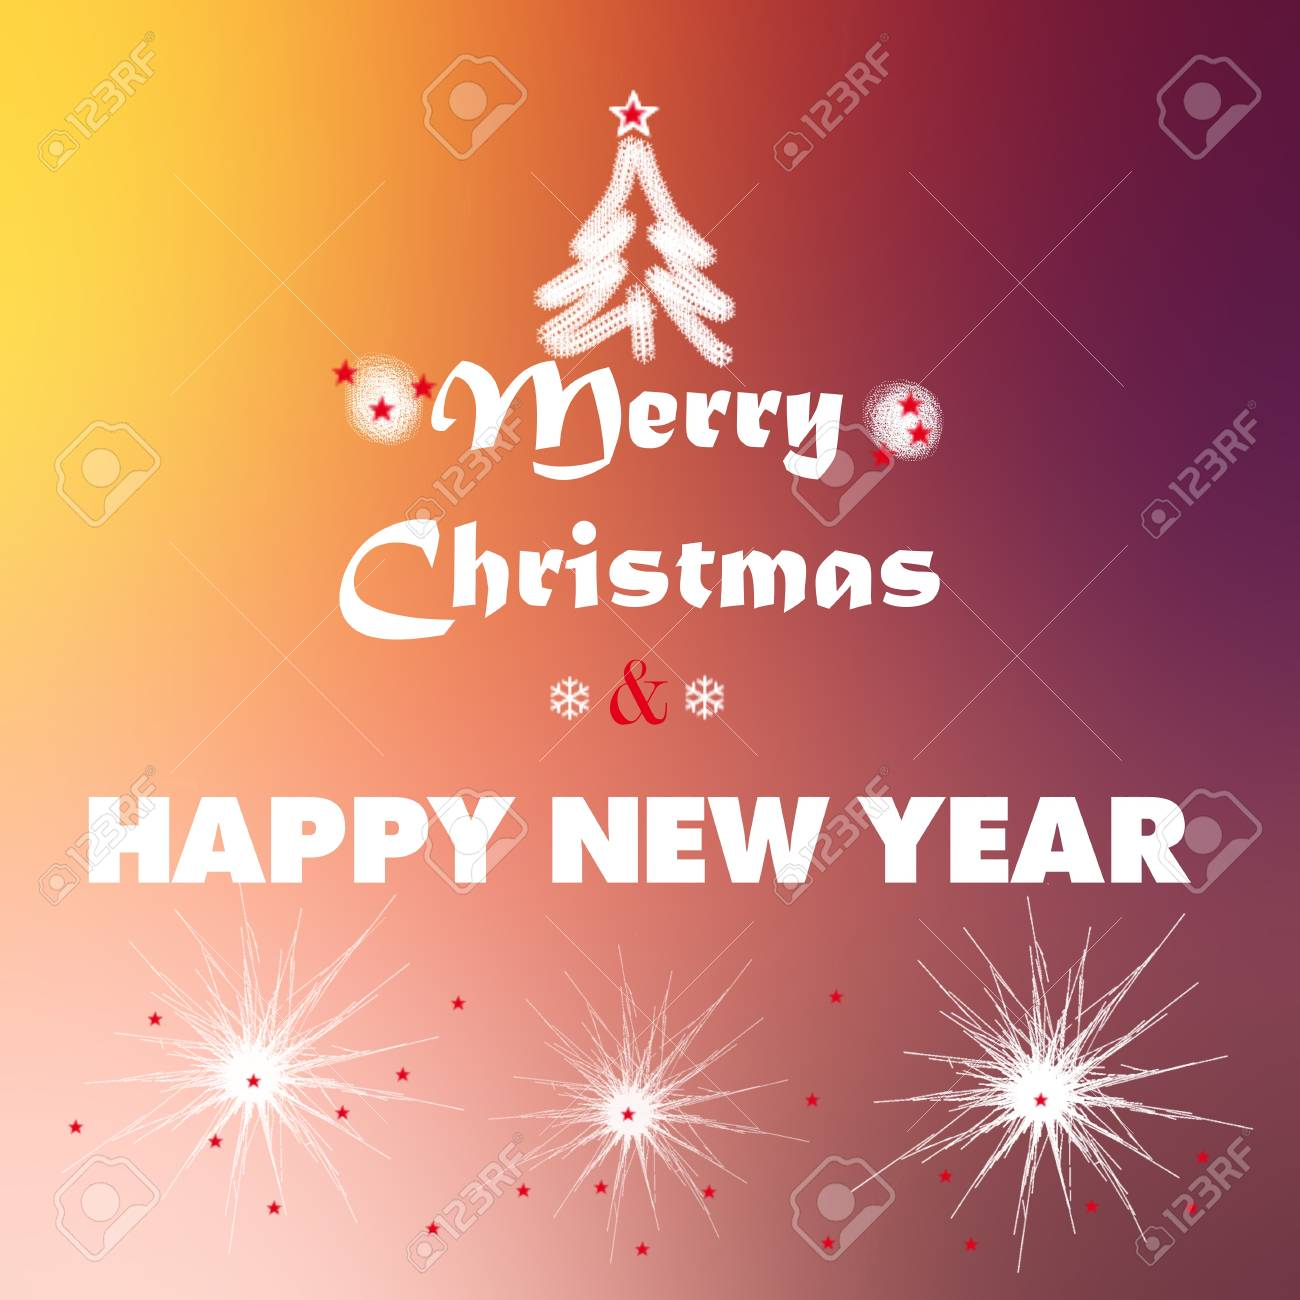 Merry christmas and happy new year greetings slogan stock photo merry christmas and happy new year greetings slogan stock photo 33784617 kristyandbryce Images